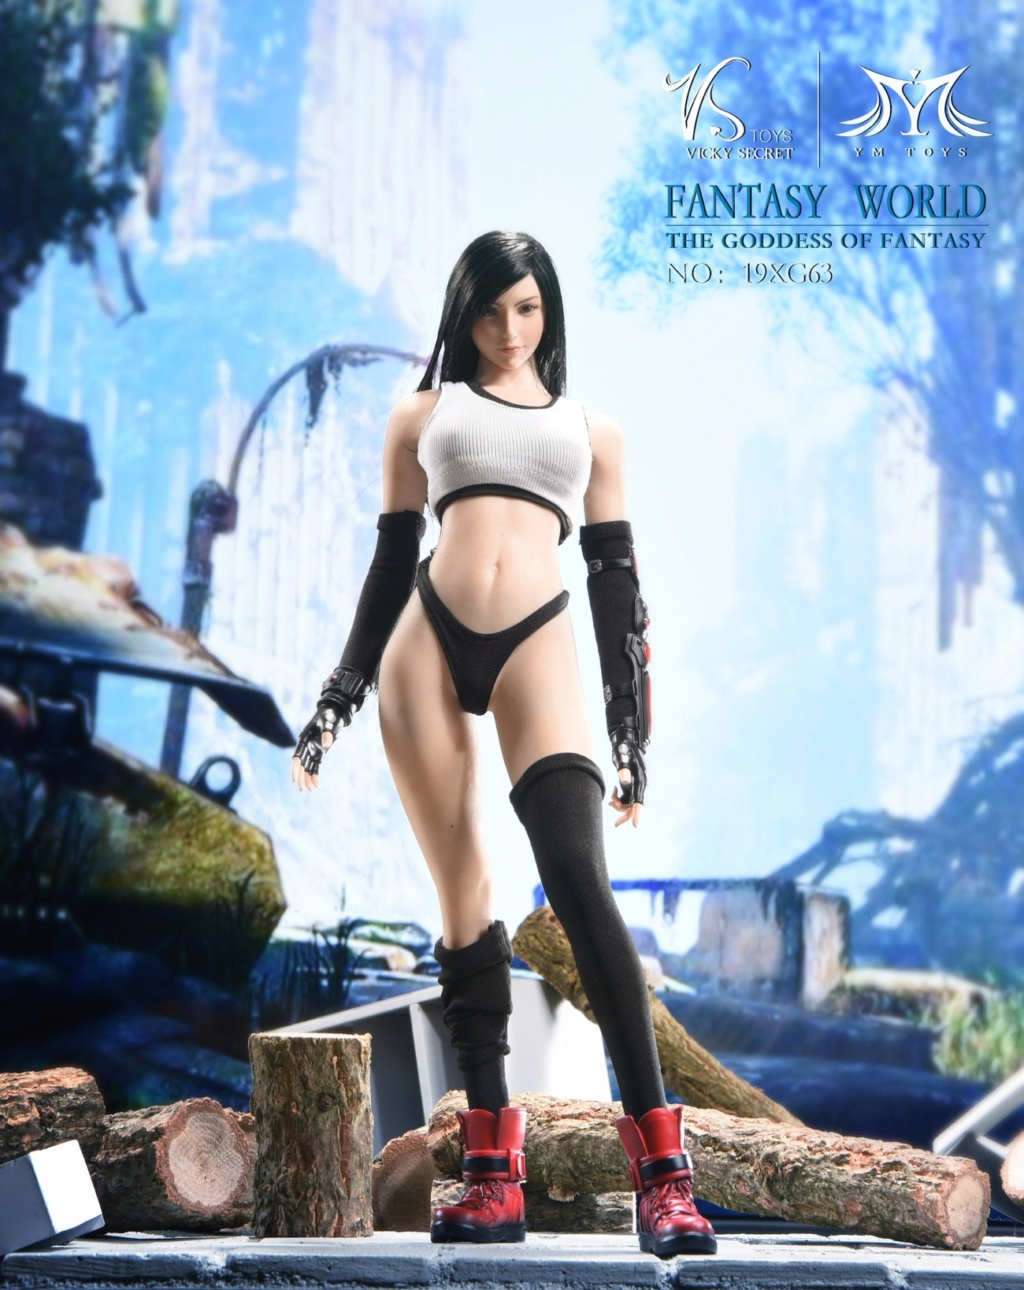 sci-fi - NEW PRODUCT: VSTOYS: 1/6 Tifa 3.0 action figure-double head carved encapsulated body configuration # 19XG63 16222710